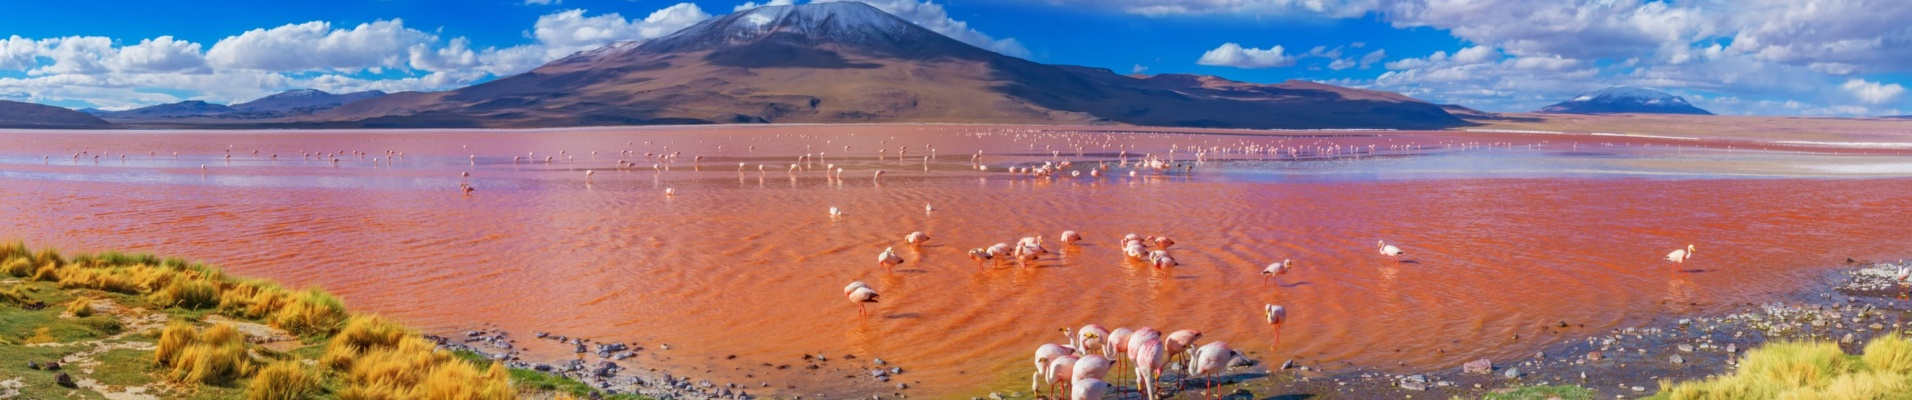 Flamants roses Laguna Colorada, Uyuni, Bolivie